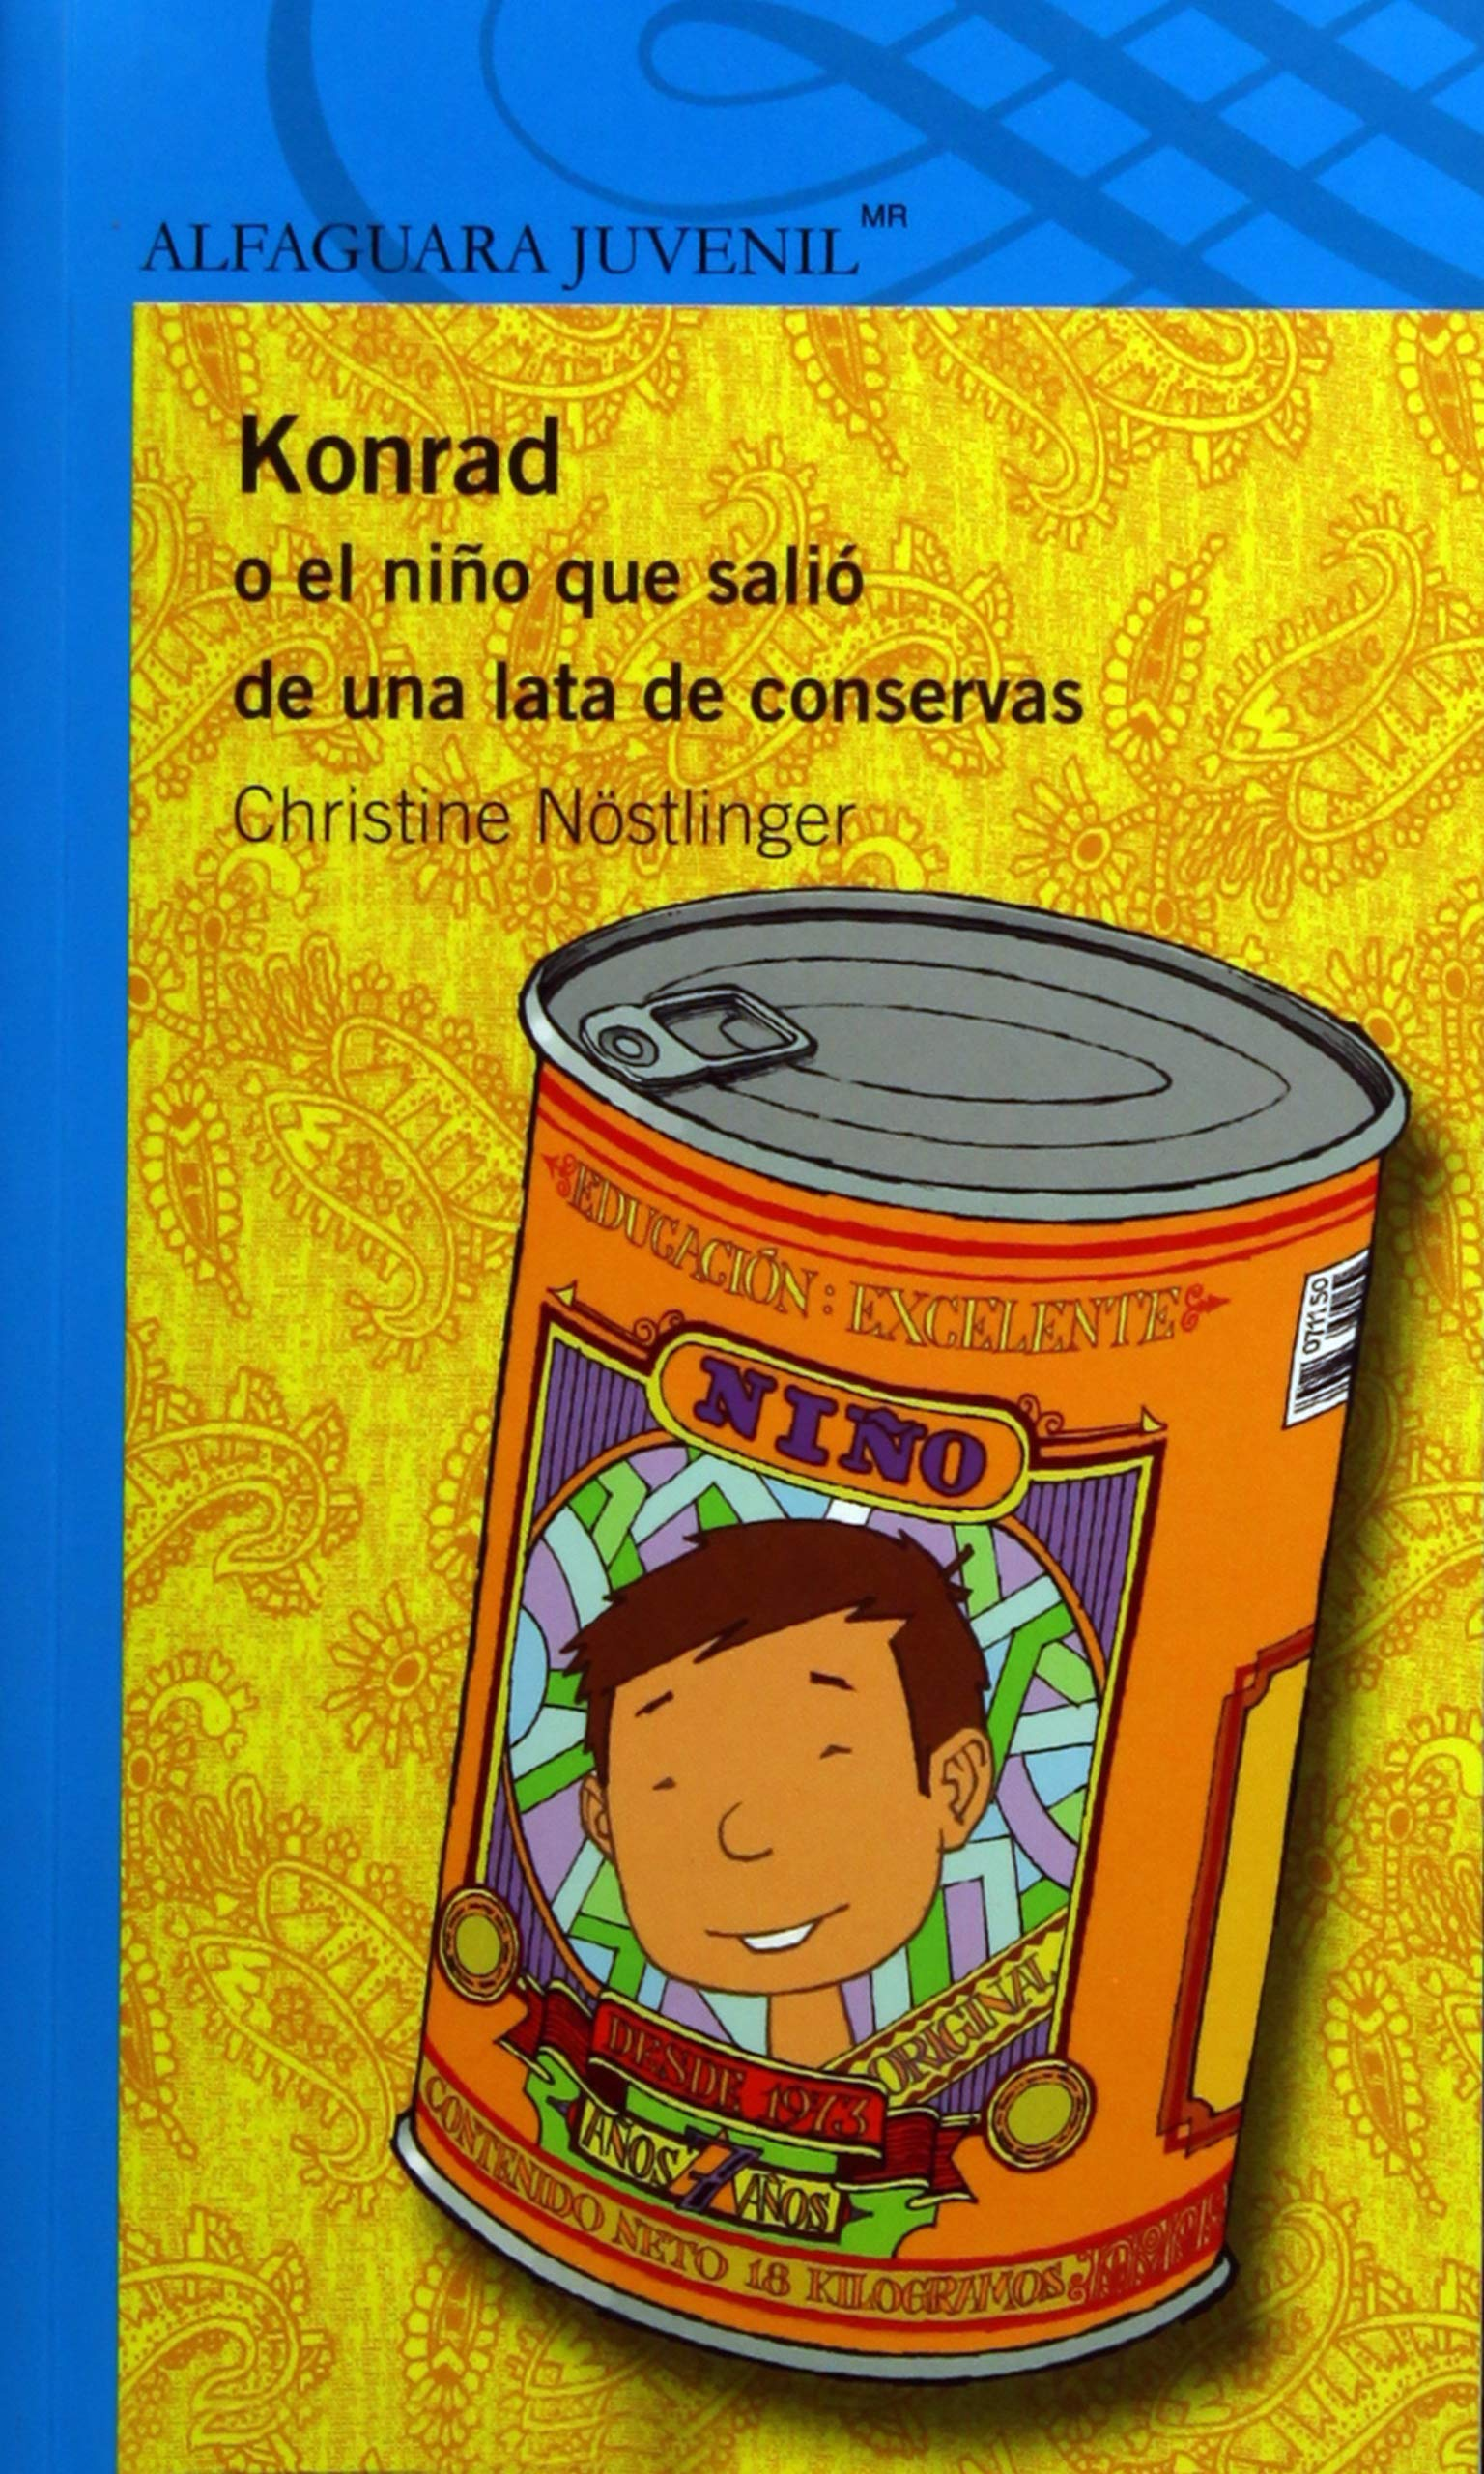 ... de conservas/ Konrad or the child came out of a tin can Alfaguara Juvenil: Amazon.es: Christine Nöstlinger, Ricardo Pélaez, Maria Jesus Ampudia: Libros